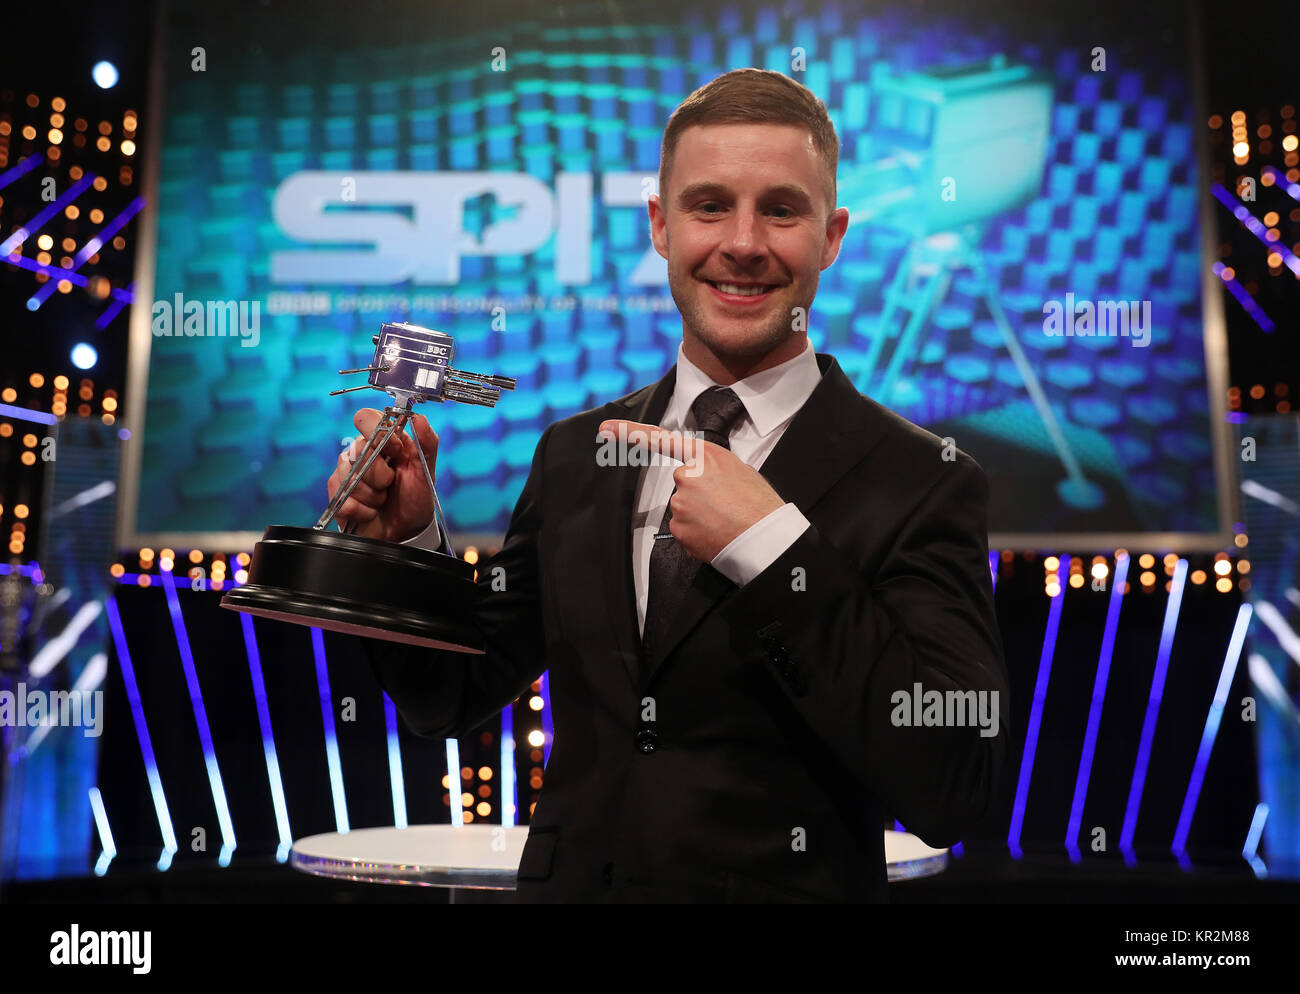 Jonathan Rae with his second place trophy during the BBC Sports Personality of the Year 2017 at the Liverpool Echo - Stock Image